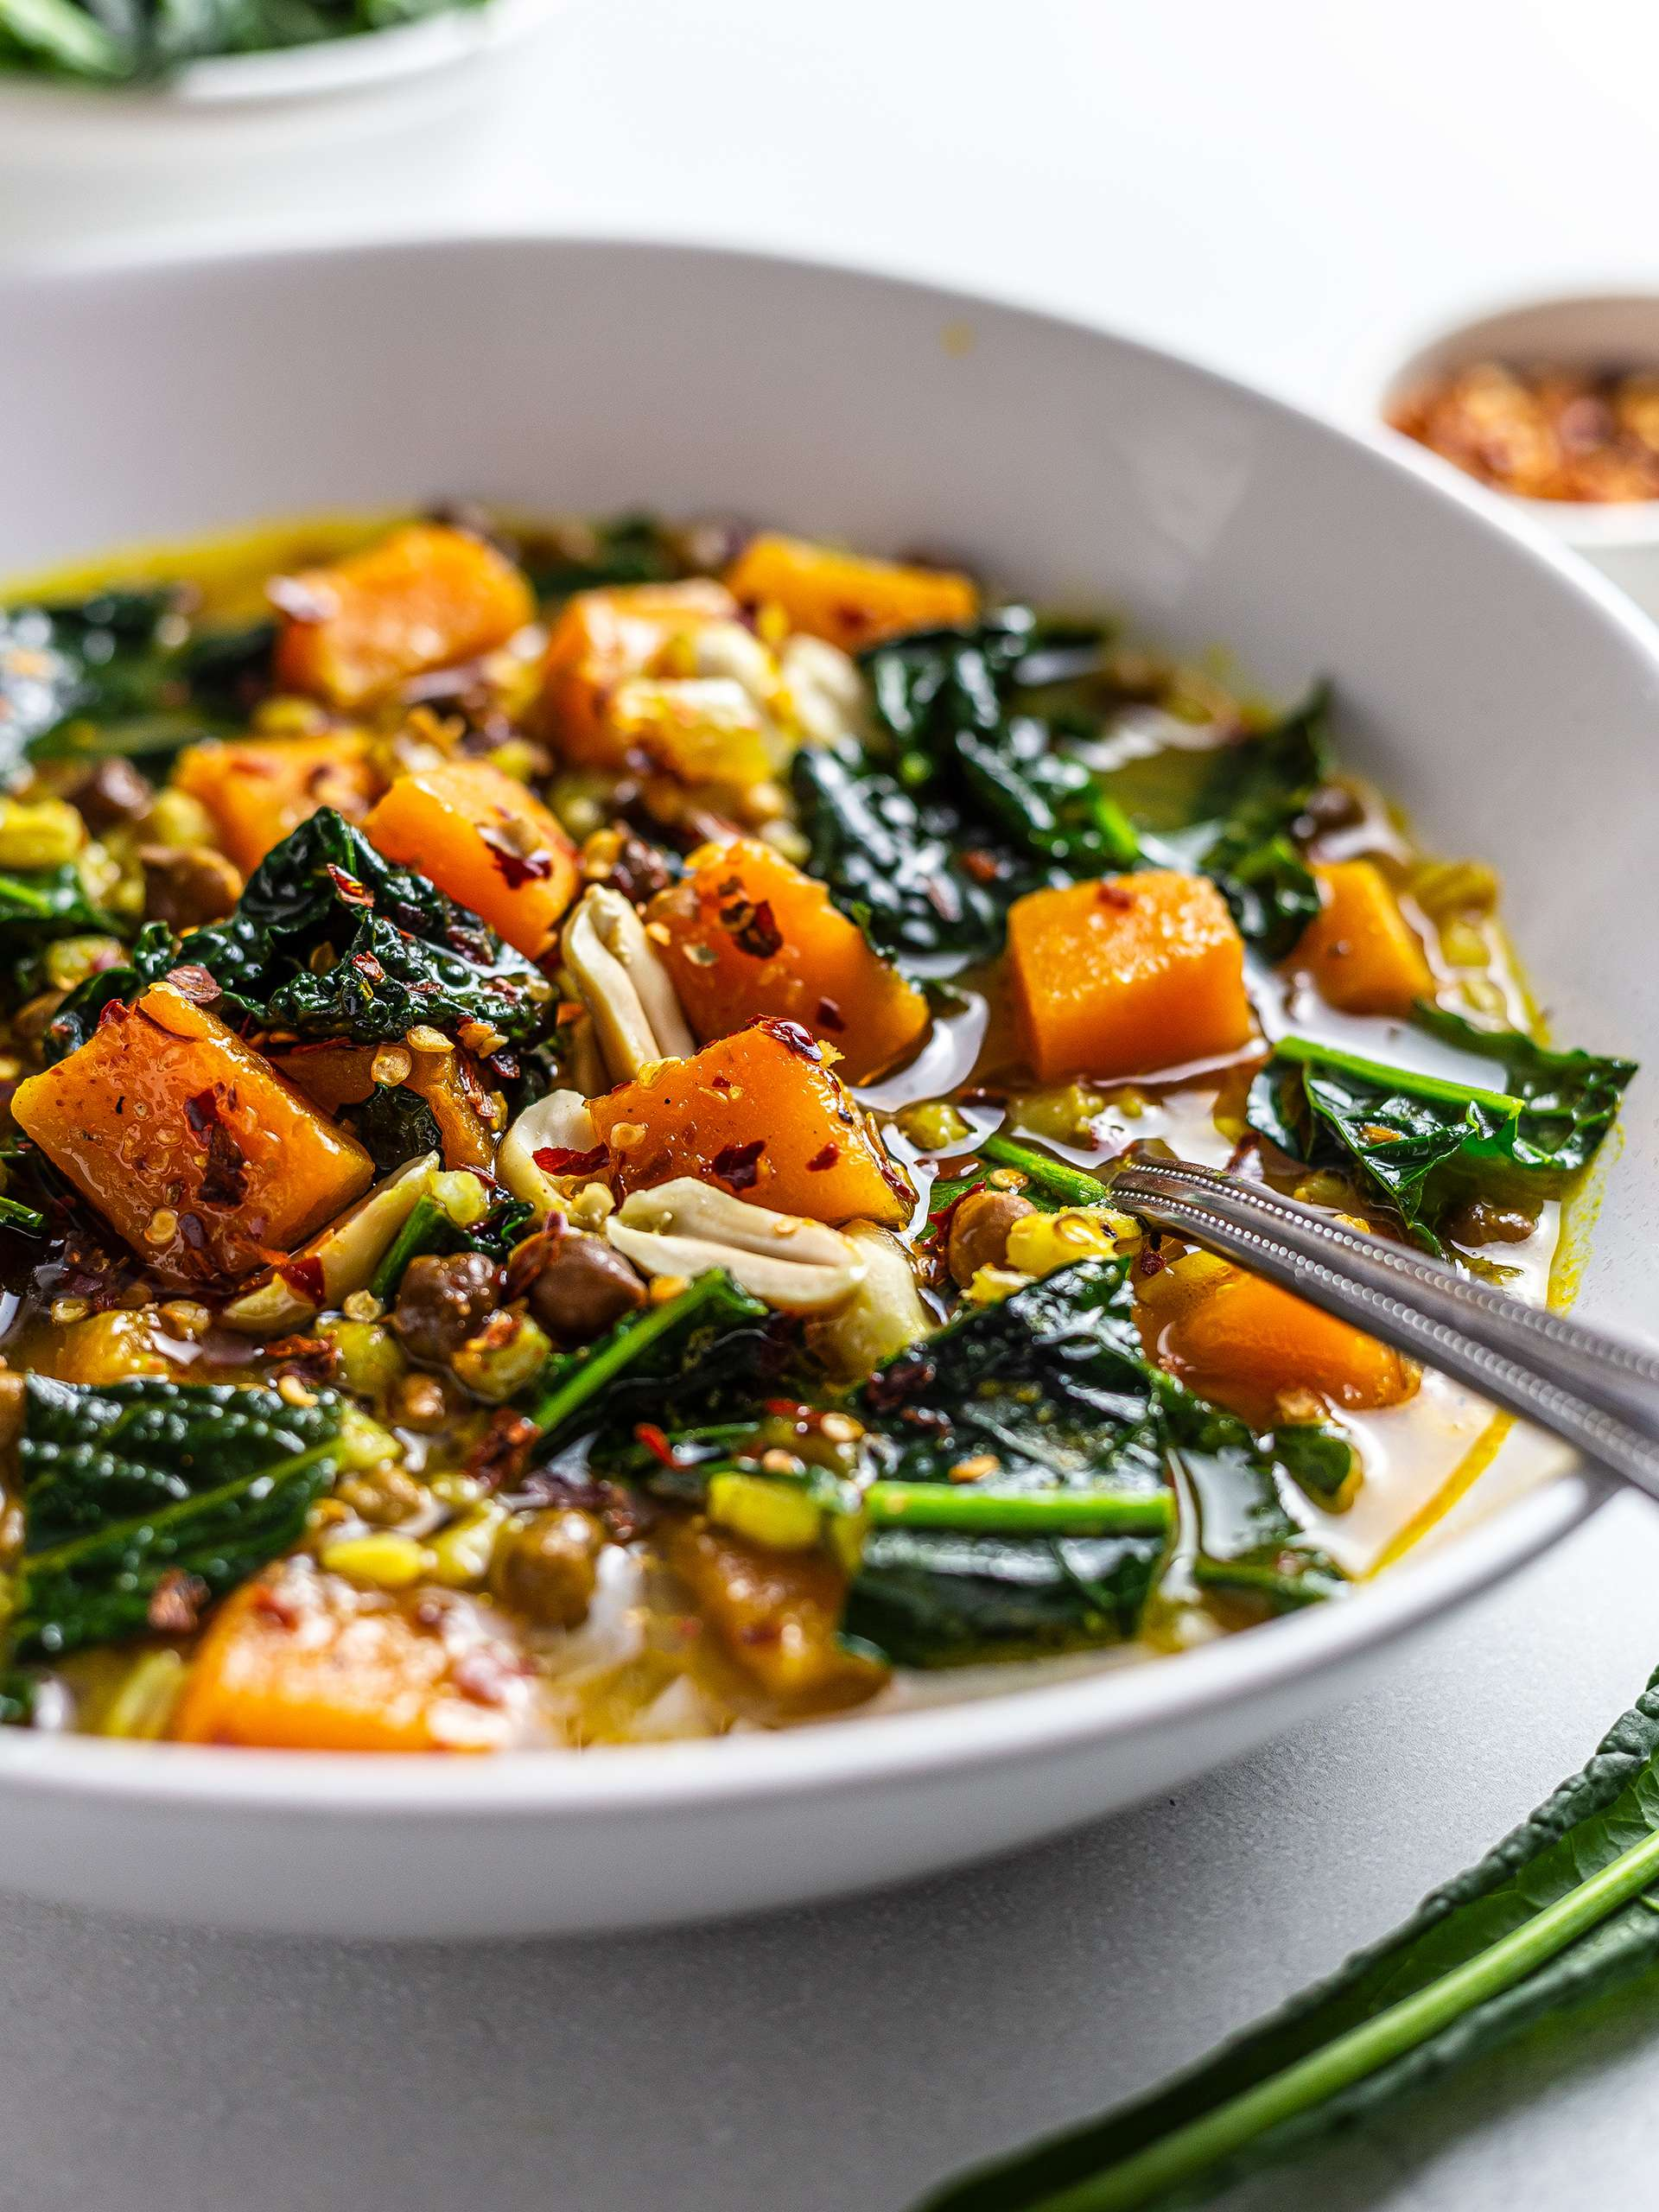 Pumpkin Kale Soup with Brown Chickpeas Thumbnail